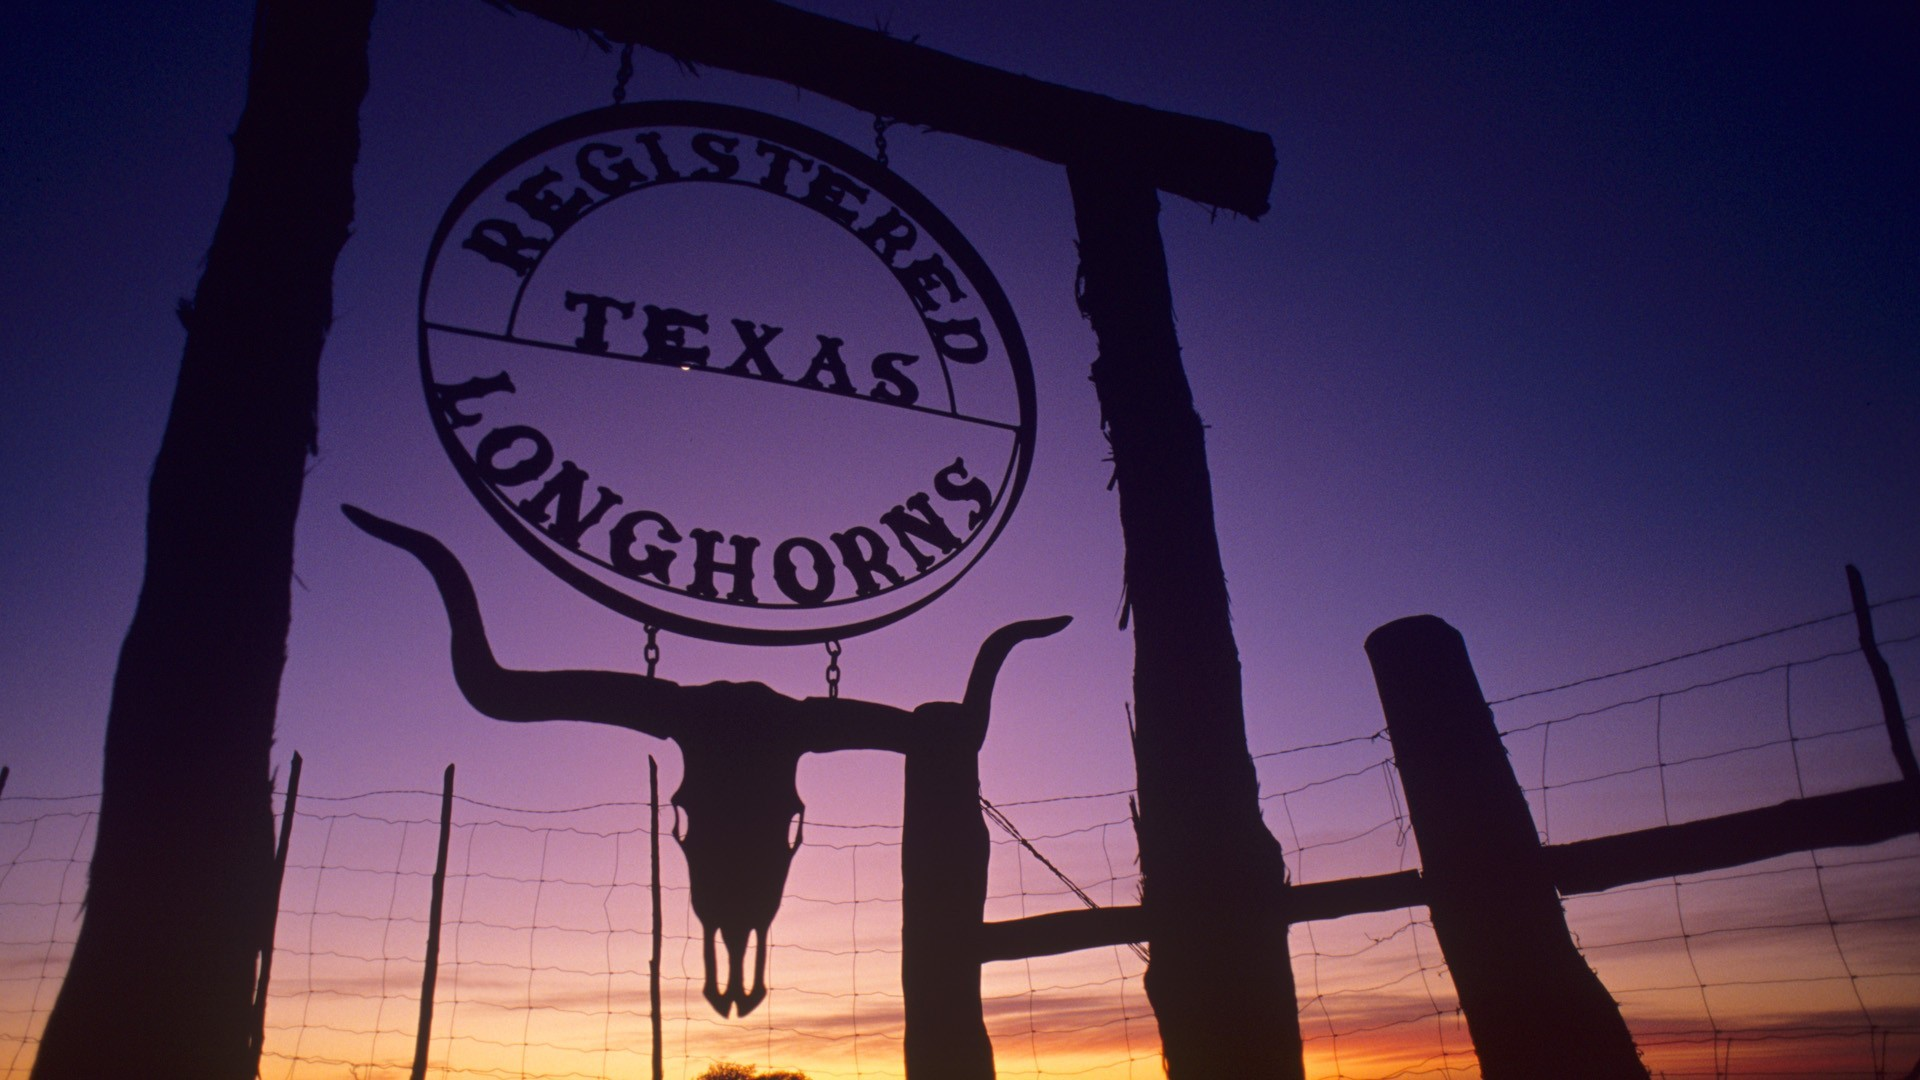 download Night Texas Backgrounds HD Wallpapers High 1920x1080